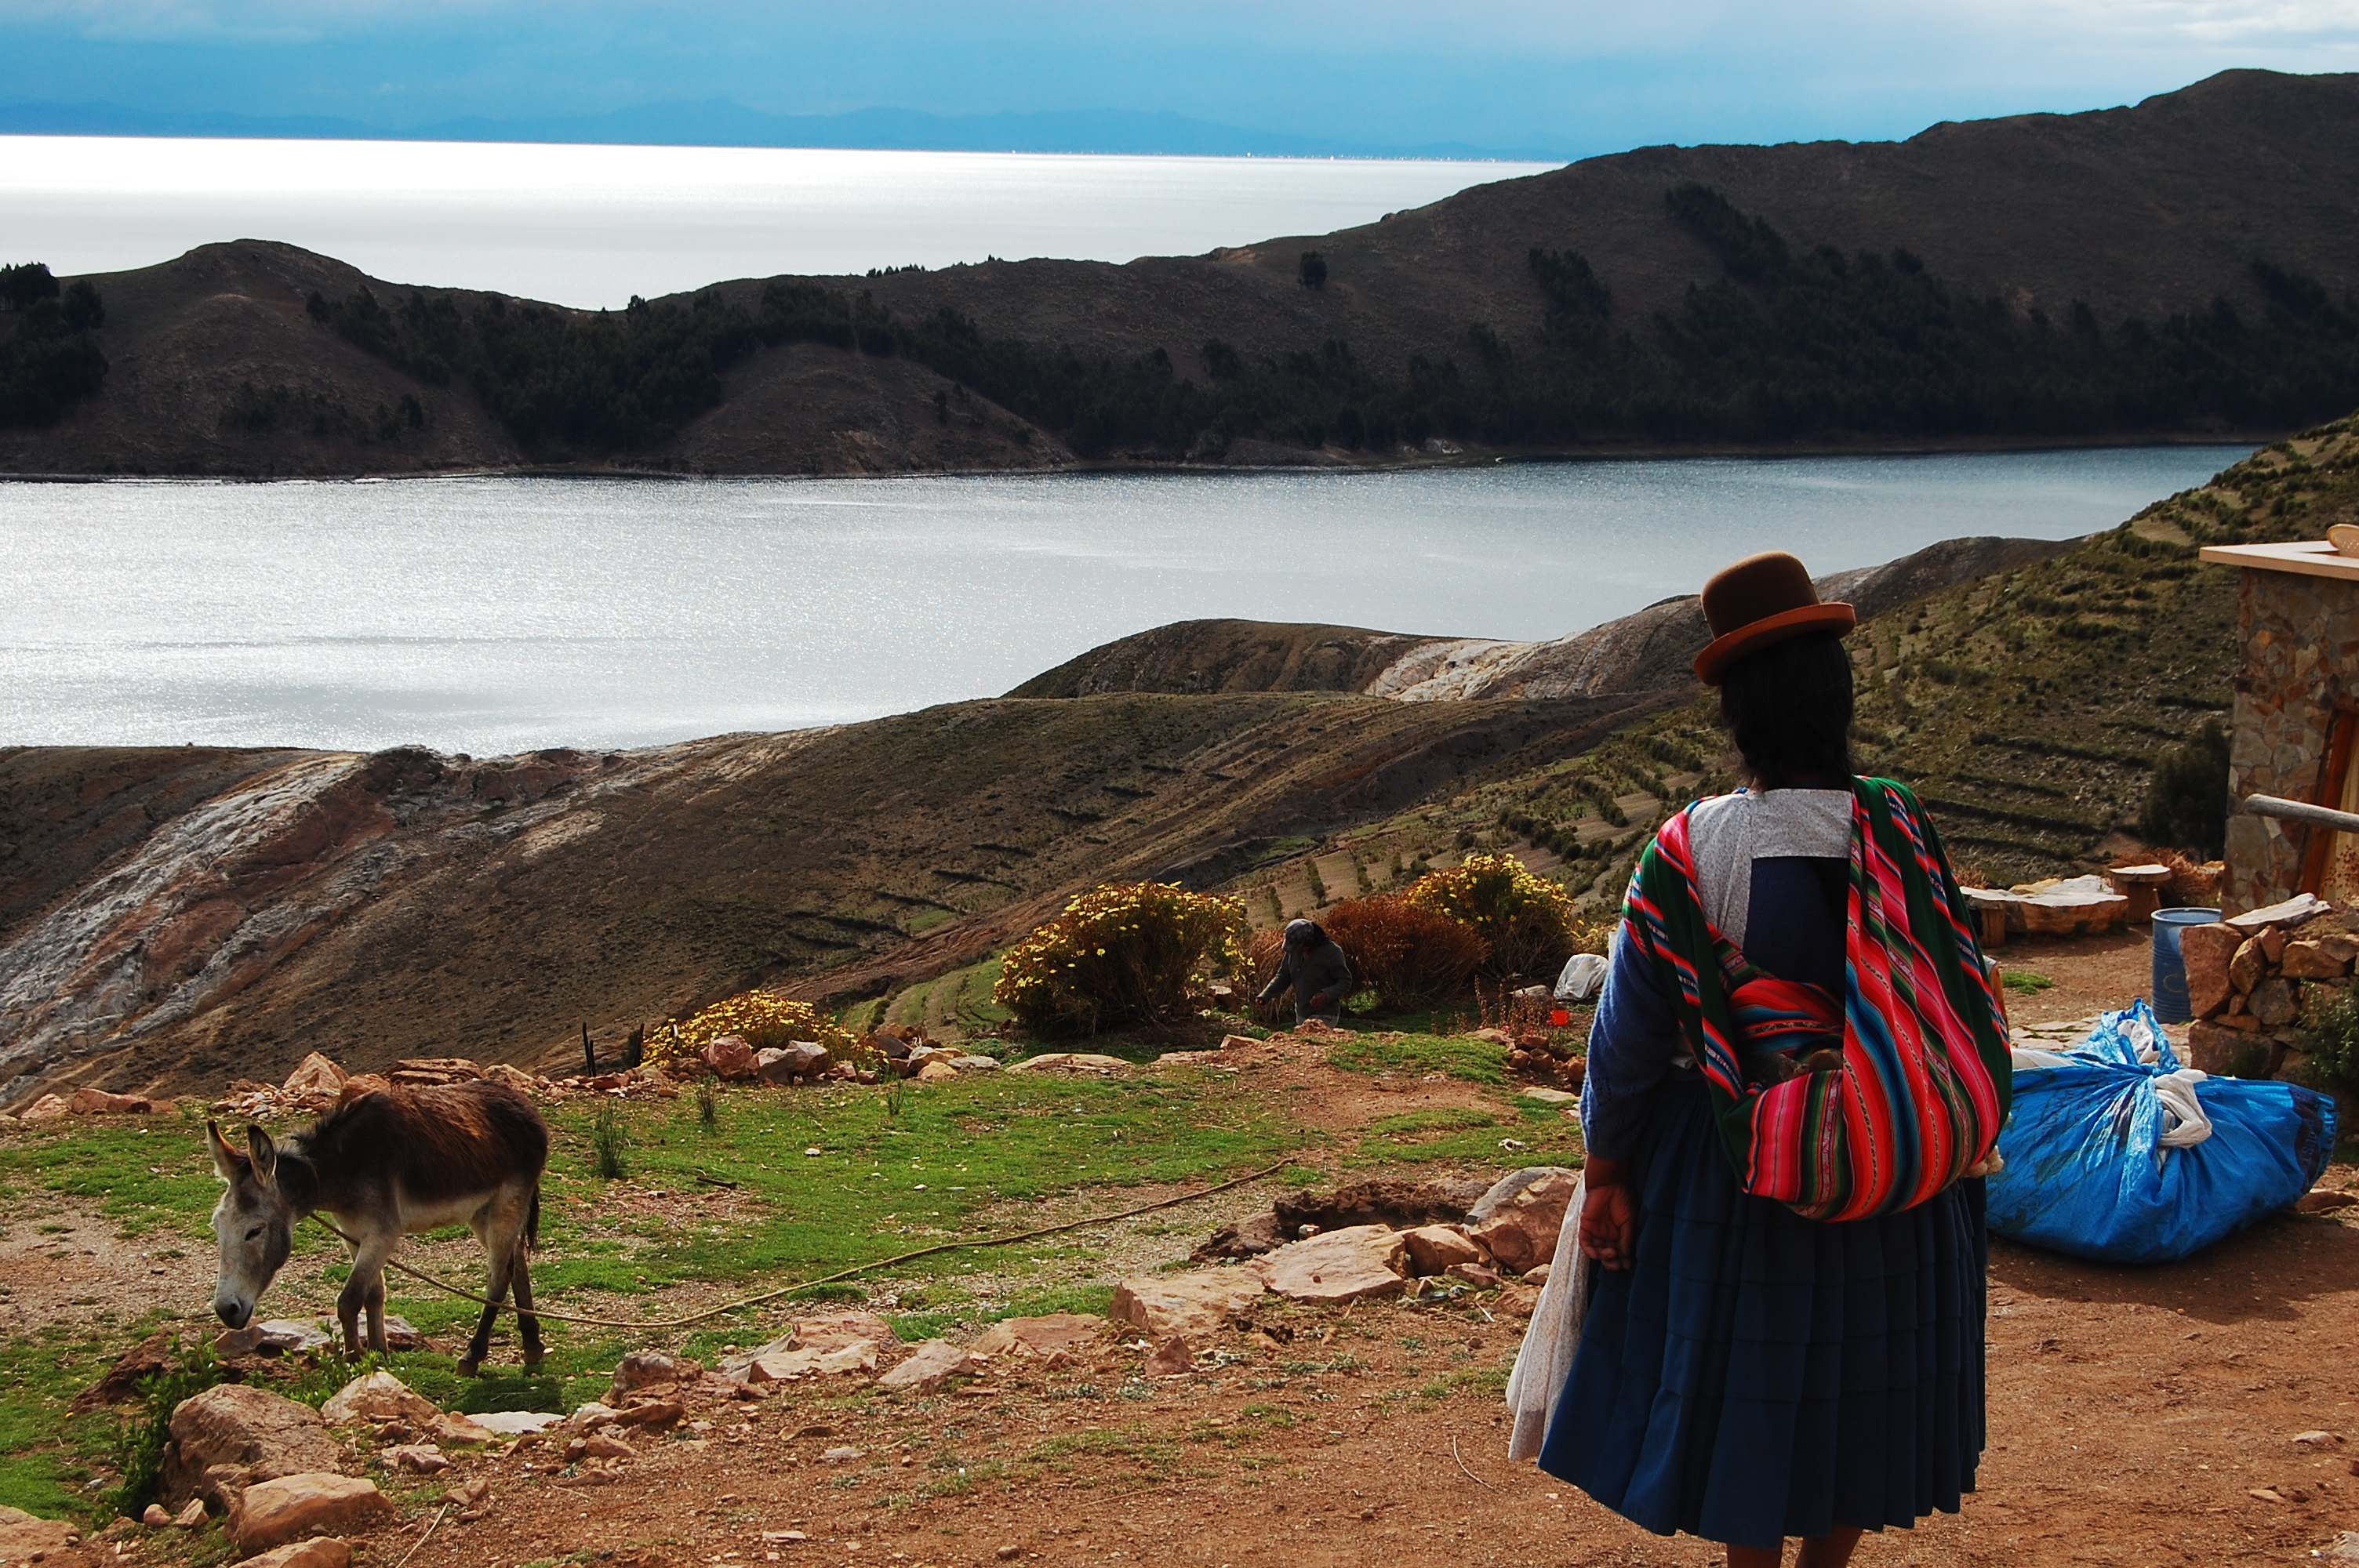 Woman in typical Andean outfit